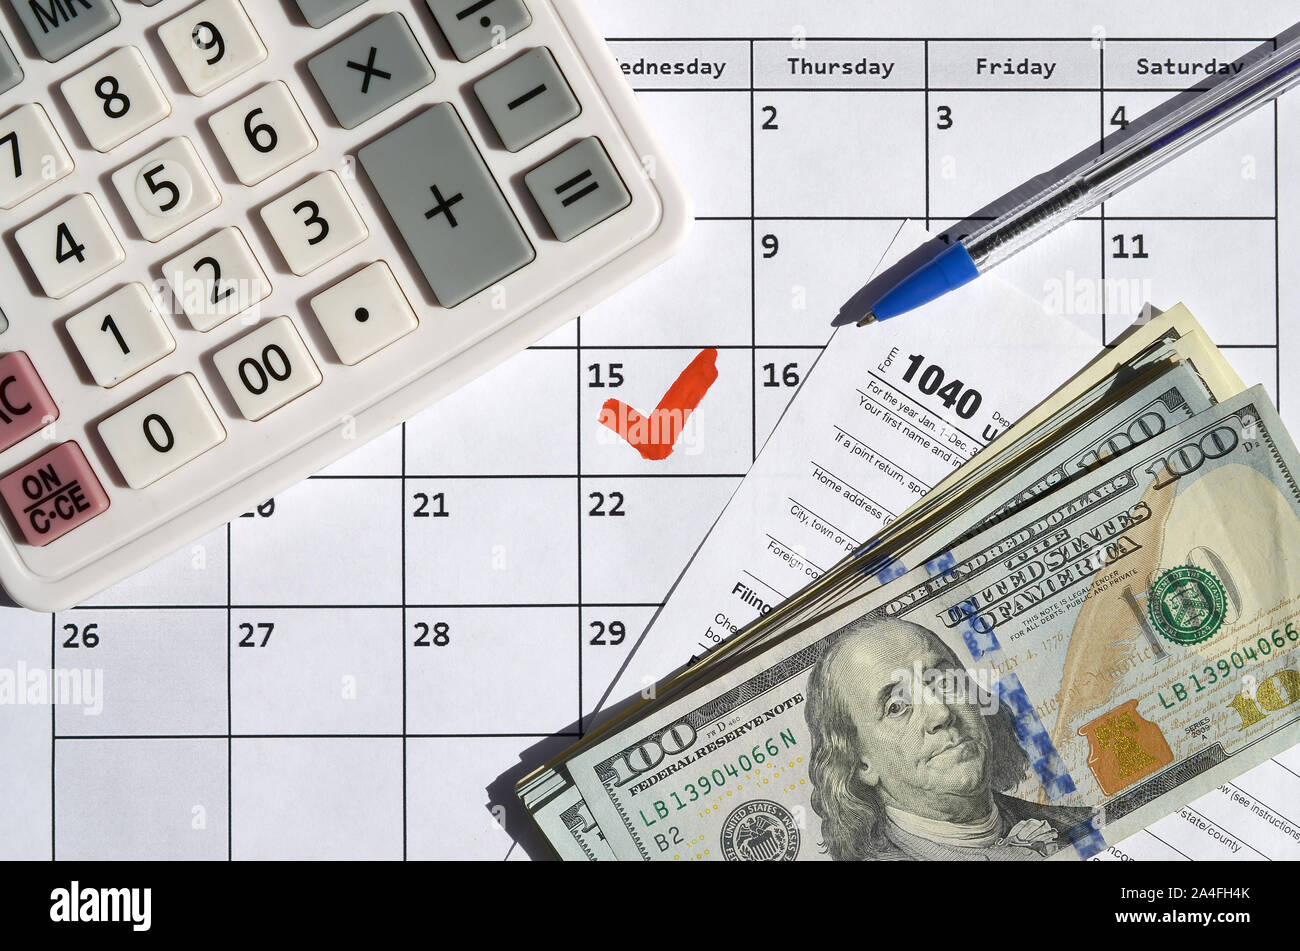 1040 Individual Income Tax Return blank with dollar bills, calculator and pen on calendar page with marked 15th April. Tax period concept. IRS Interna Stock Photo